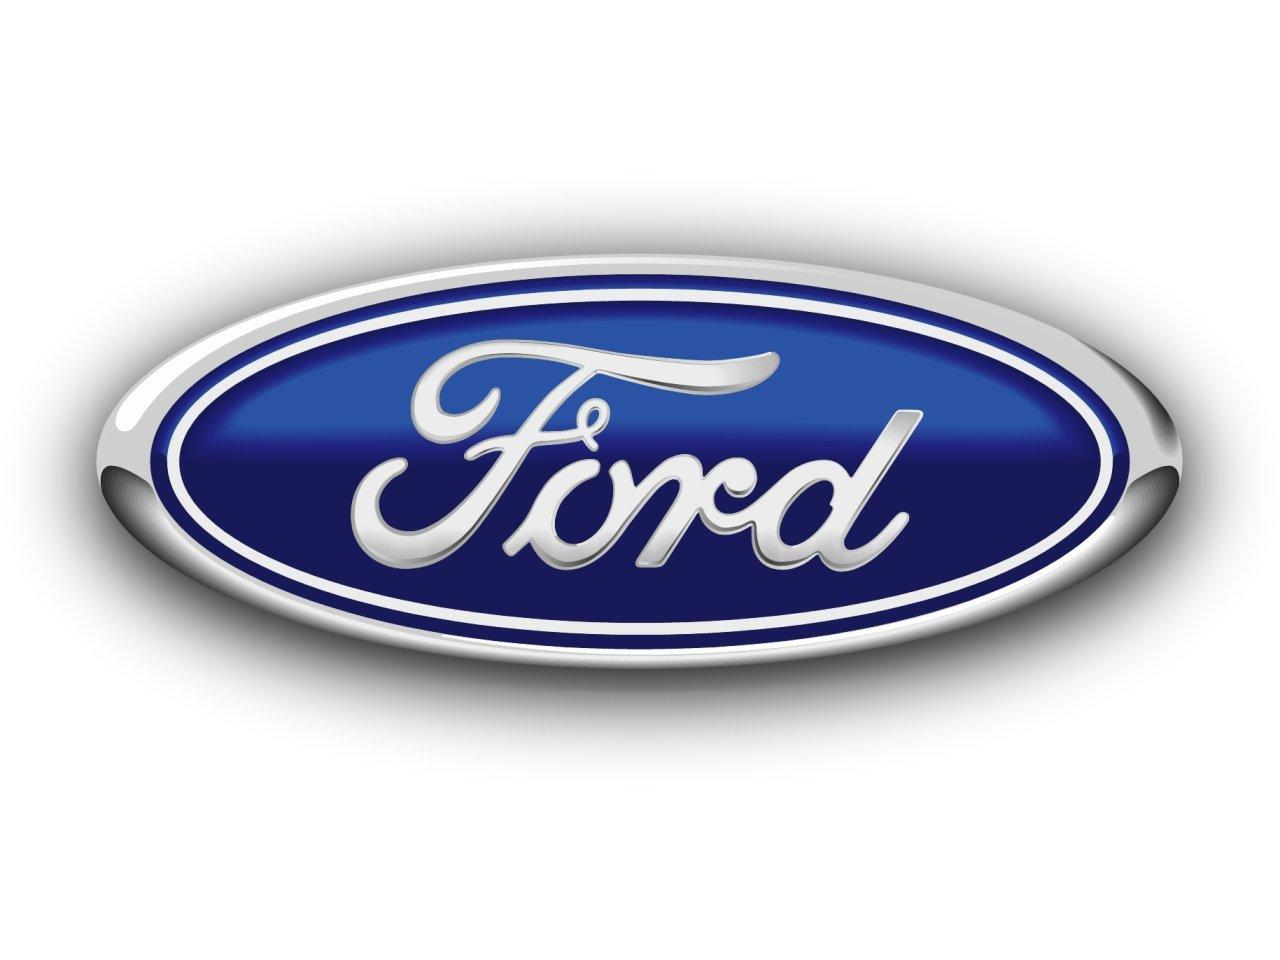 Ford 1Q earnings up slightly, company promises more savings